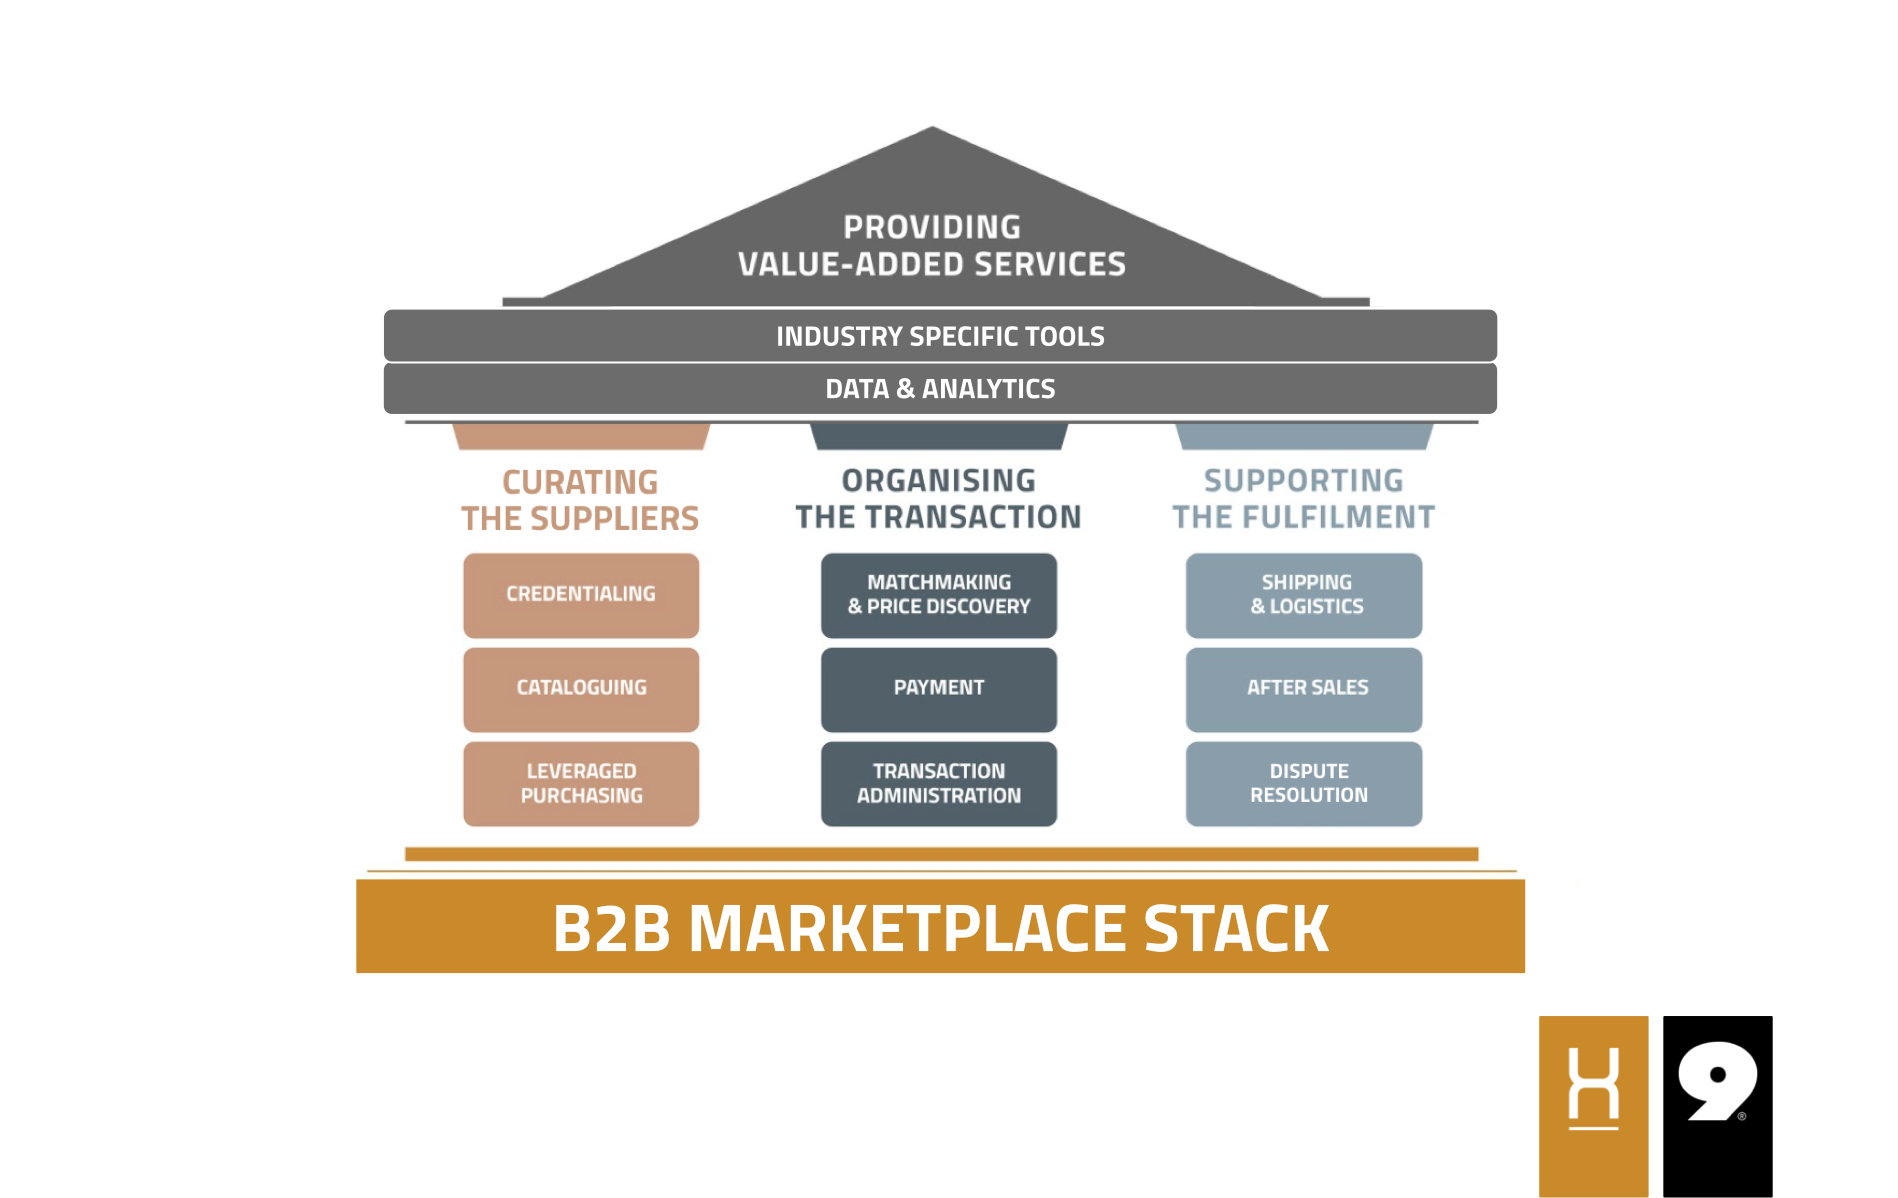 The B2B Marketplace Stack